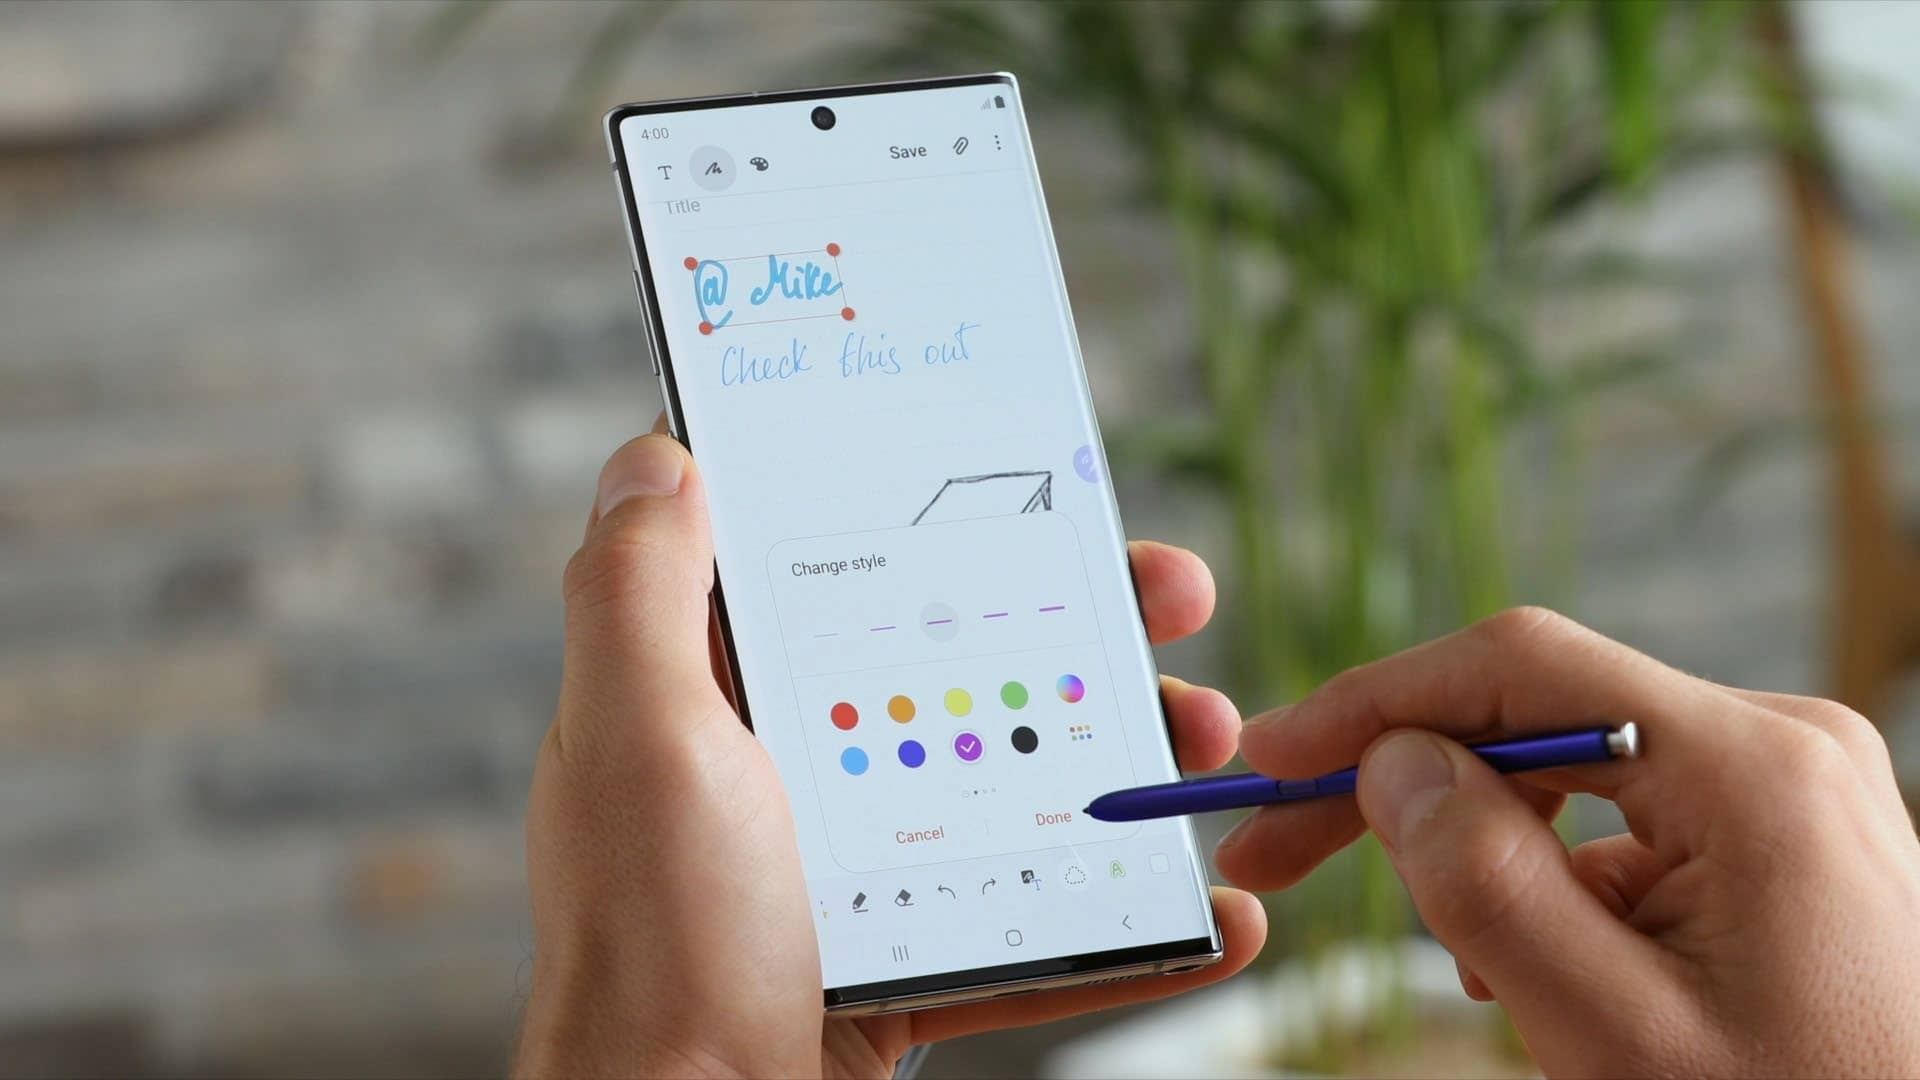 Samsung Galaxy Note 10+ Hands-On: A New Model Changes The Game, For Better Or Worse